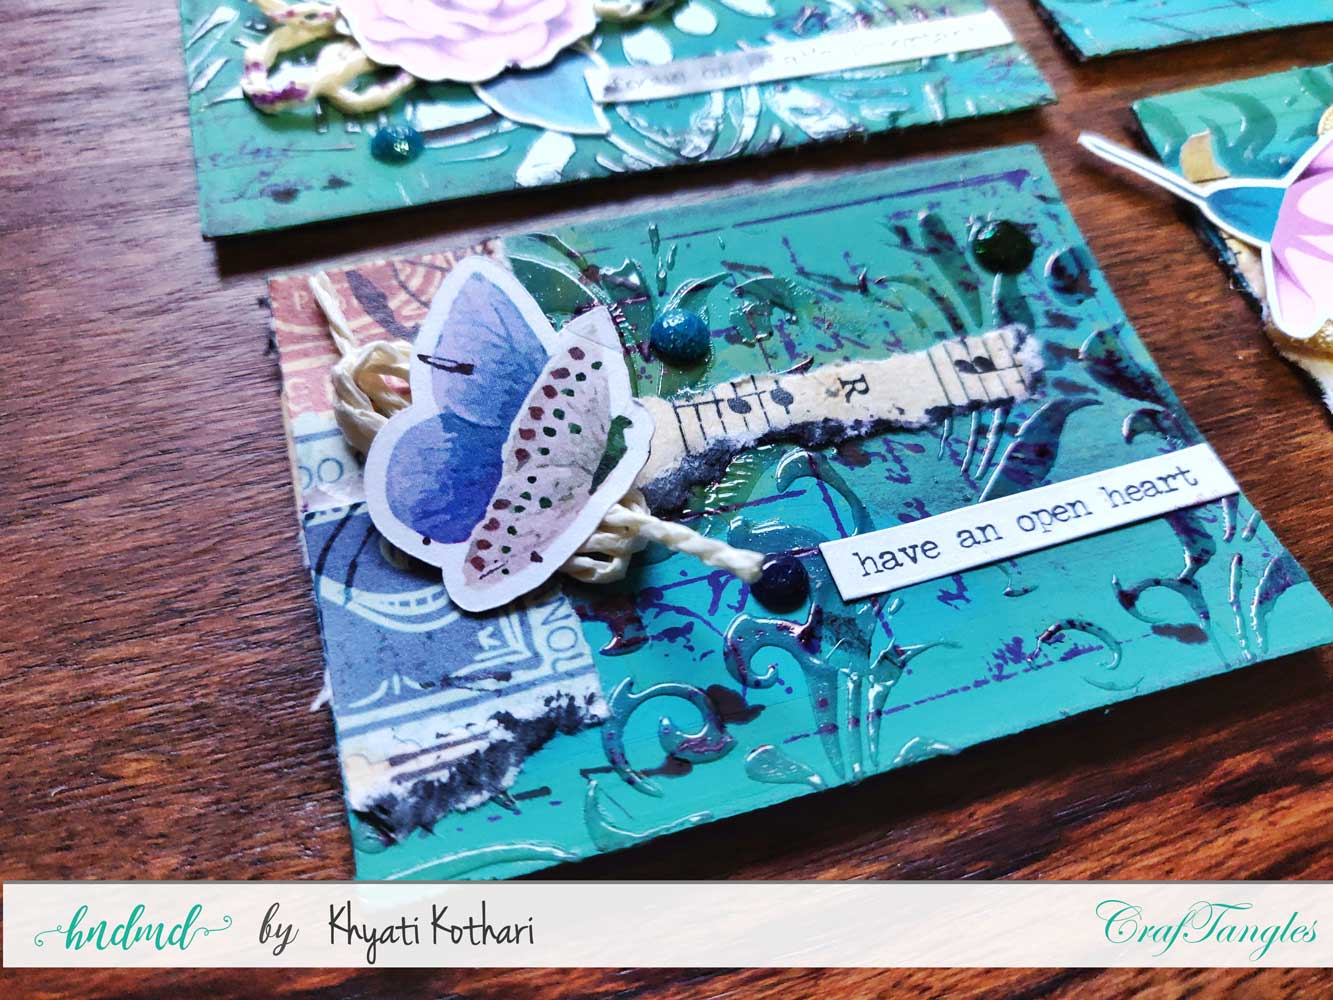 Some mixed media mini ATCs using CrafTangles products 2